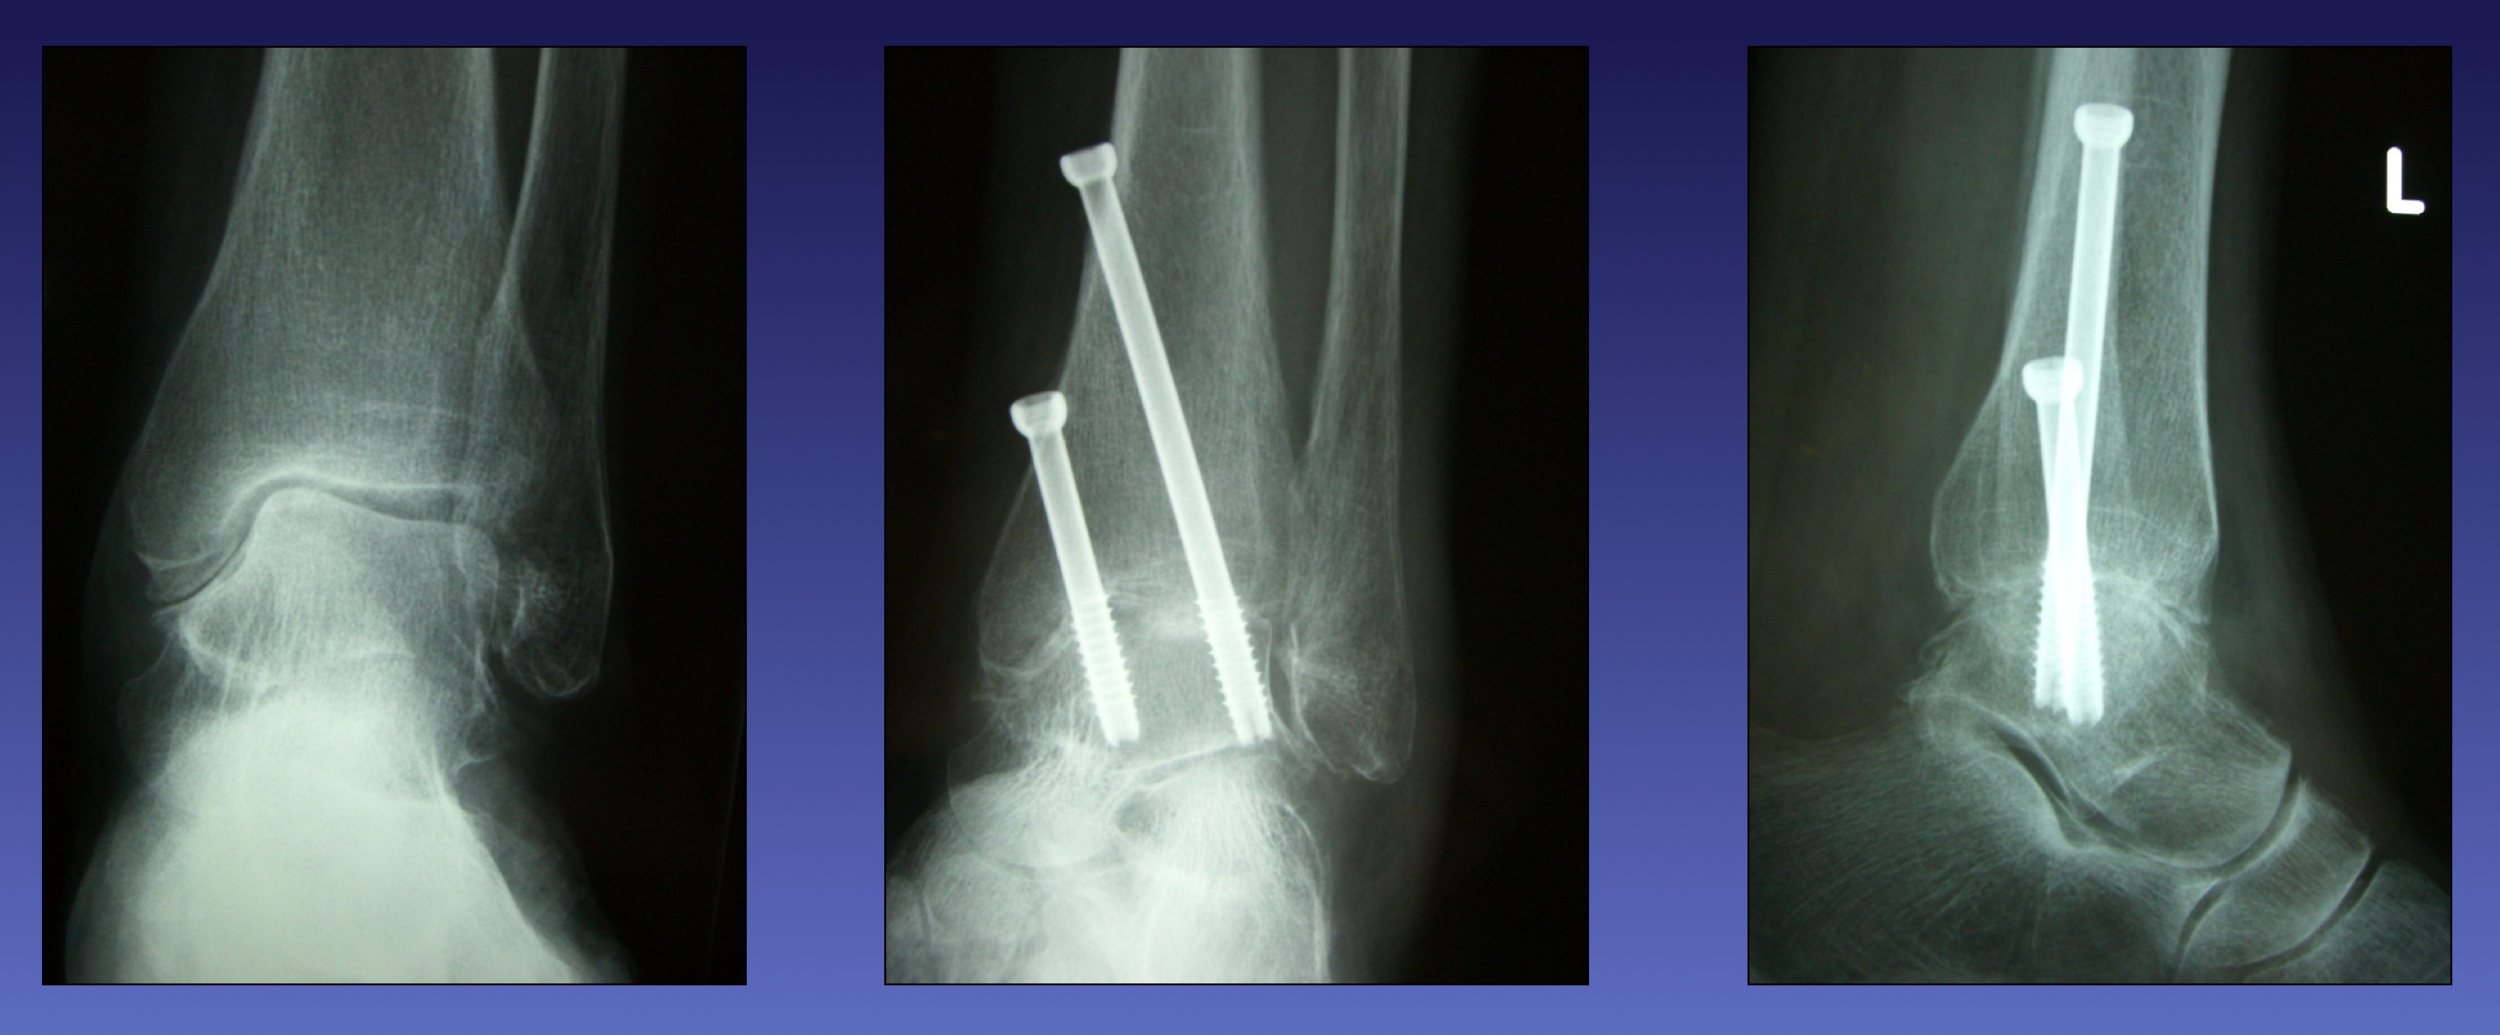 X-rays before and after arthroscopic ankle fusion (arthrodesis) surgery by Mr Redfern for a patient with painful ankle arthritis